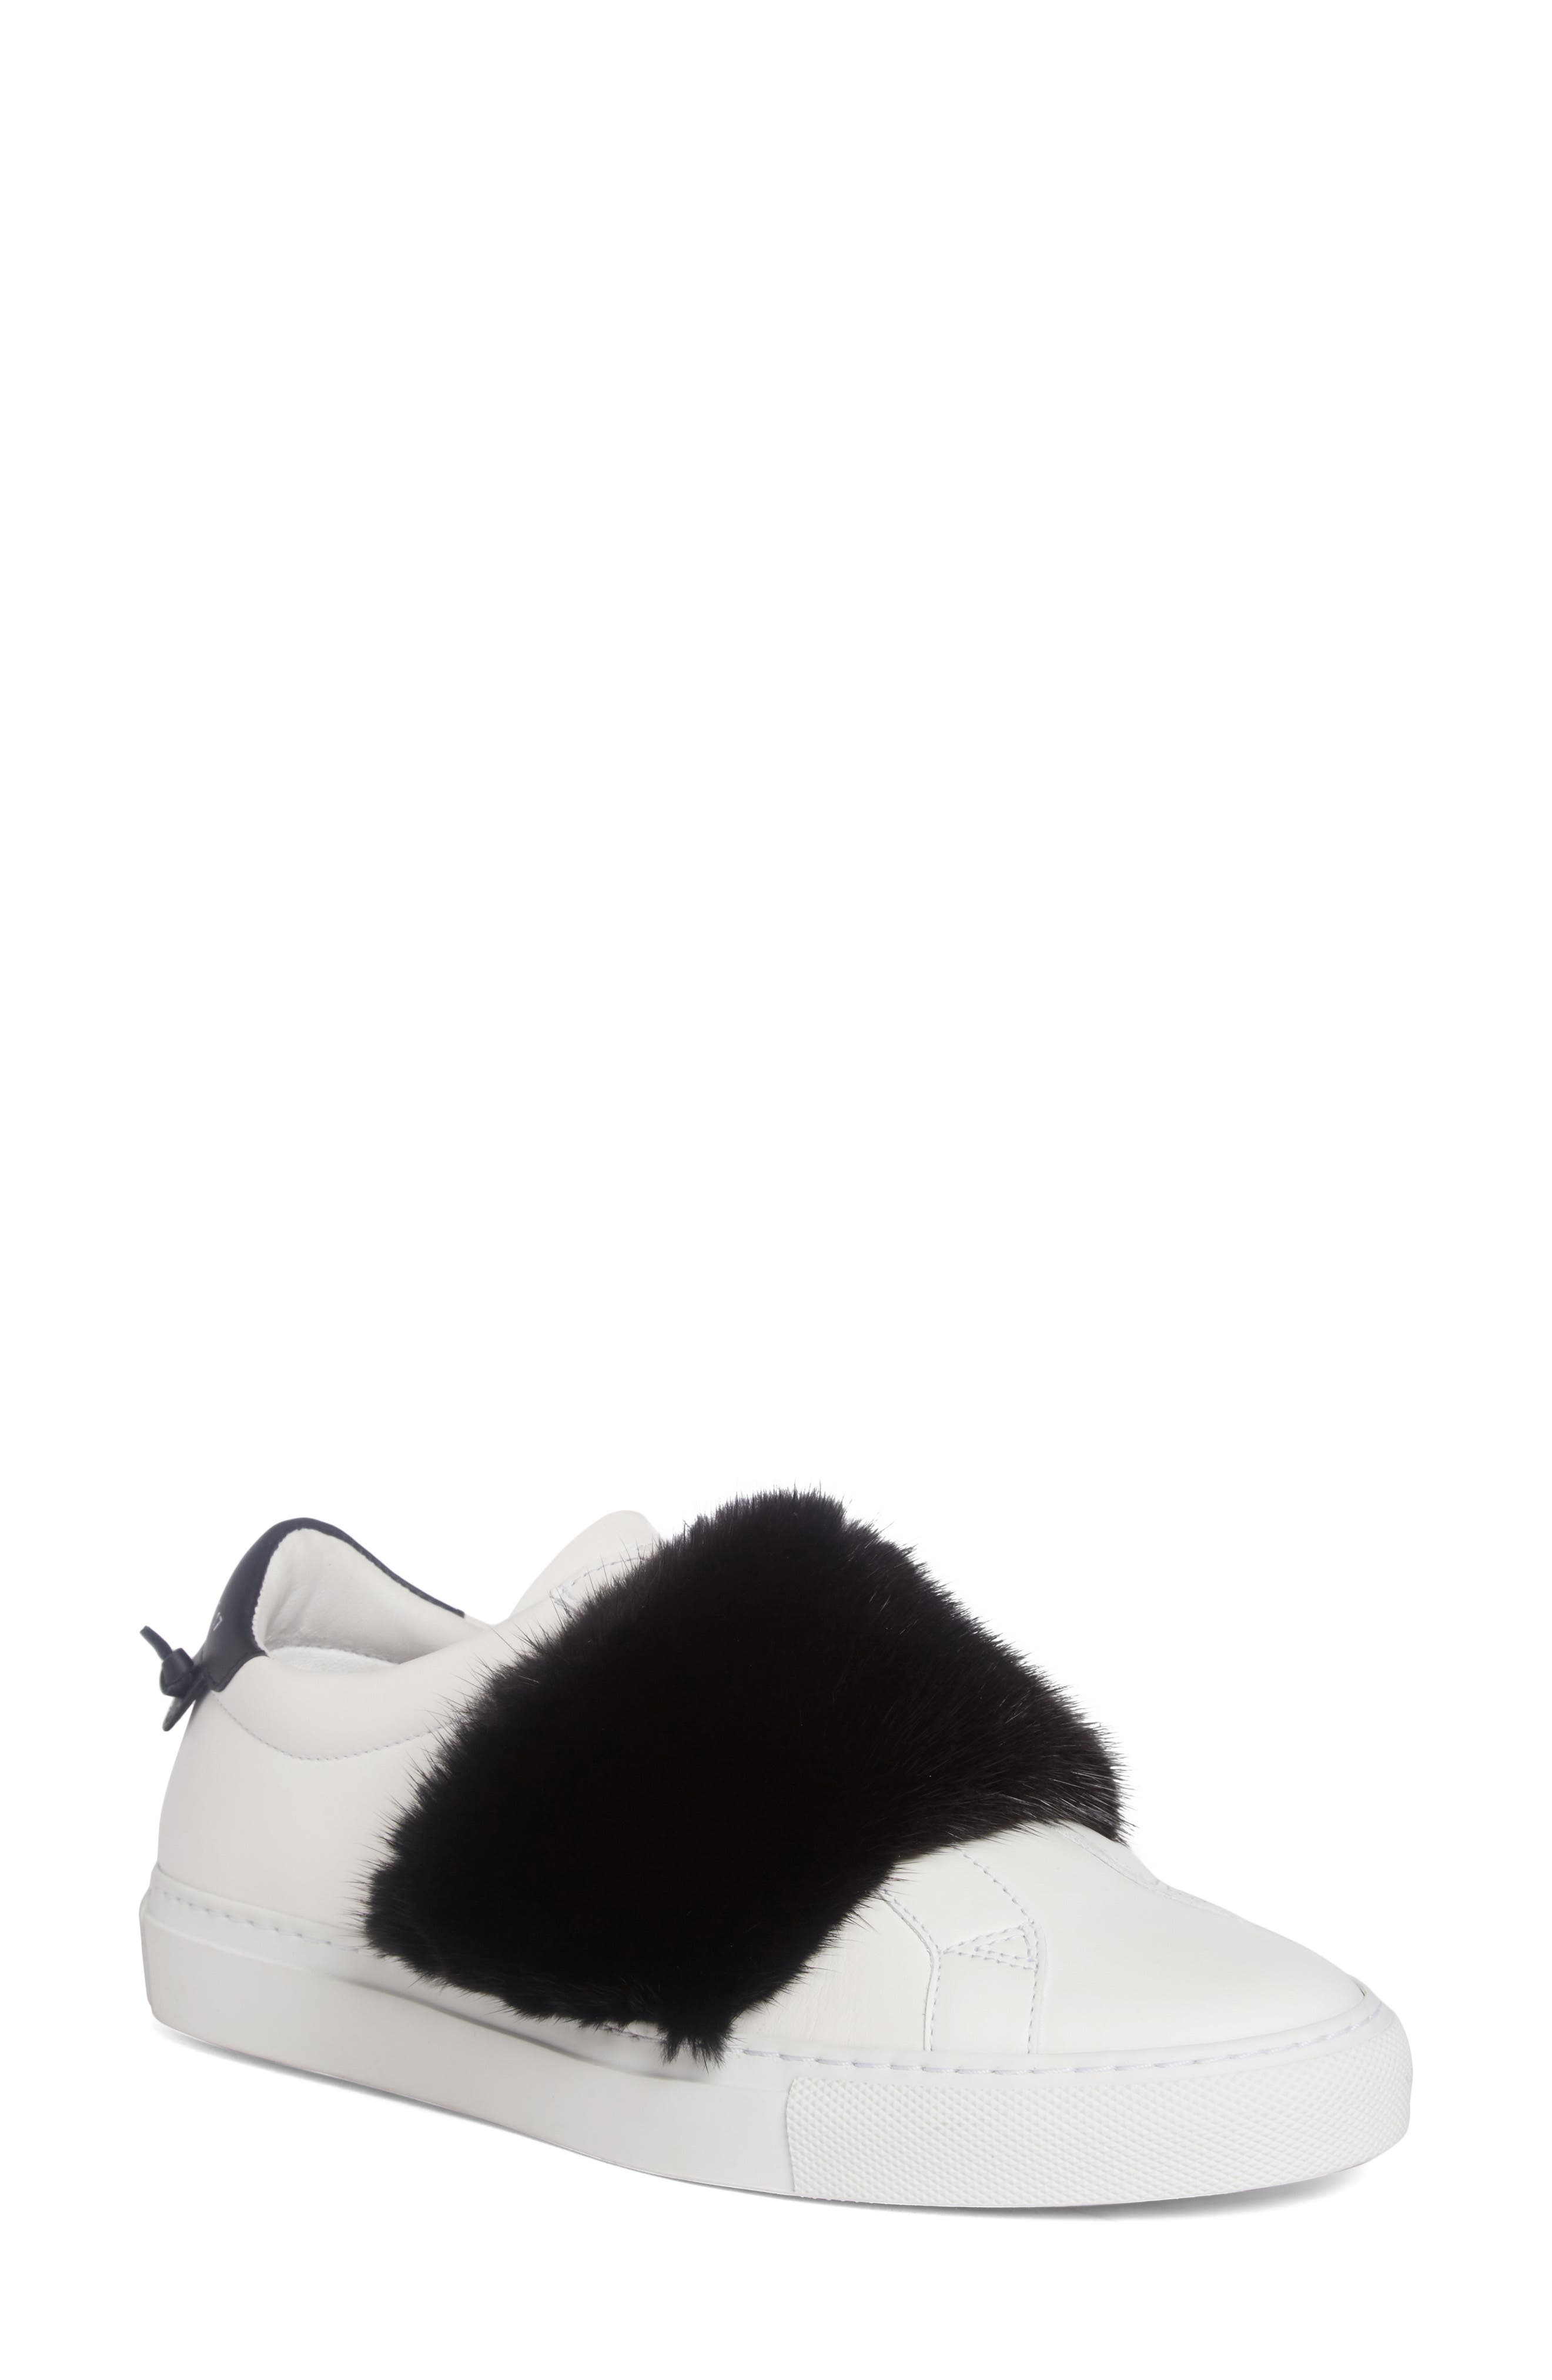 Givenchy Urban Street Slip-On Sneaker with Genuine Mink Fur Trim (Women)